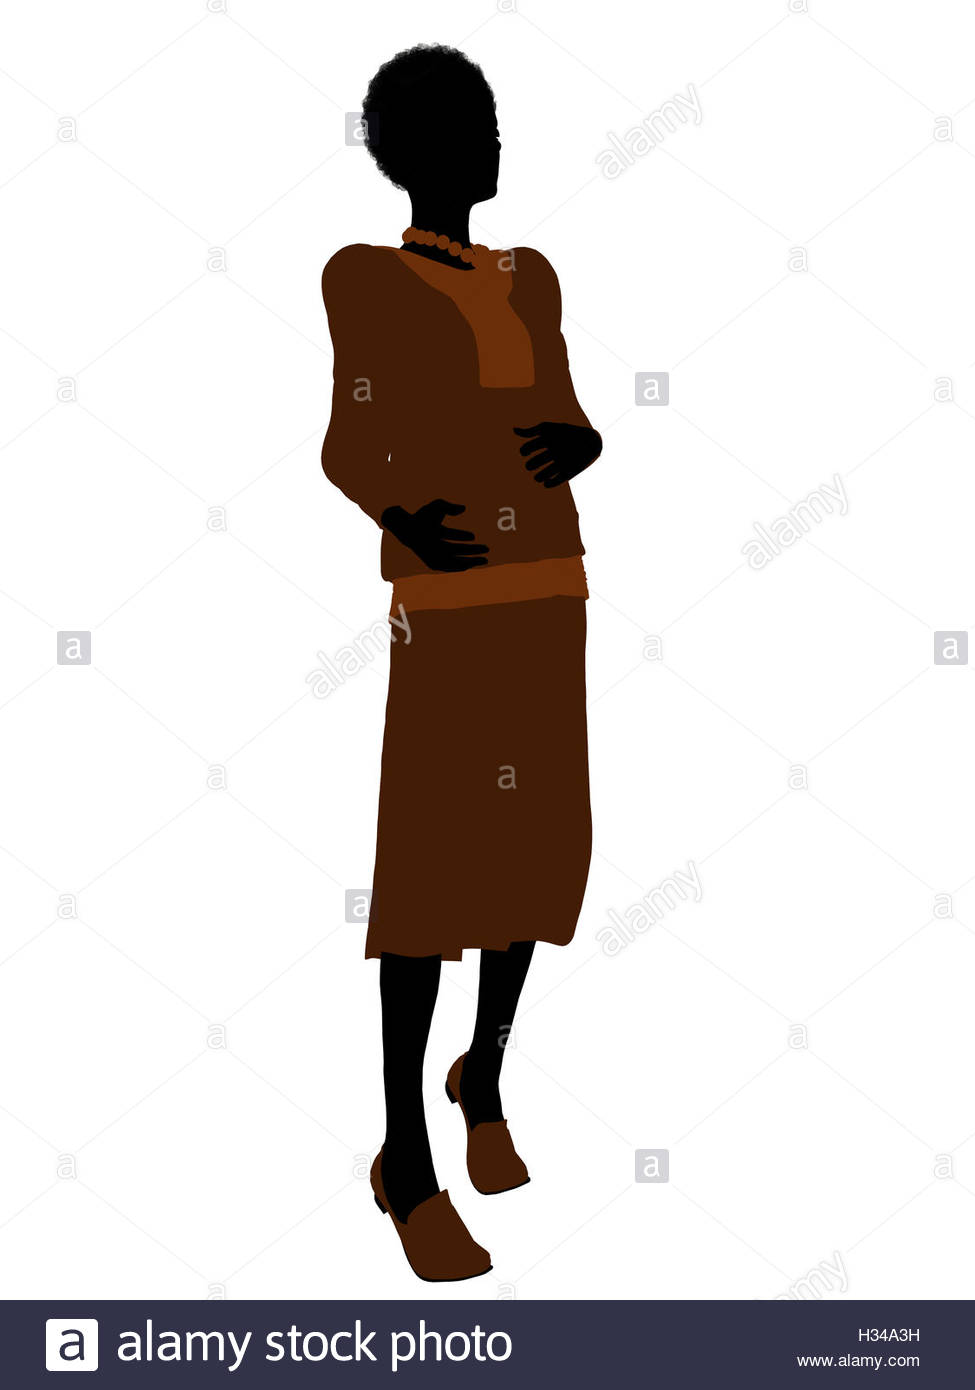 975x1390 Conservative African American Female Silhouette Stock Photo